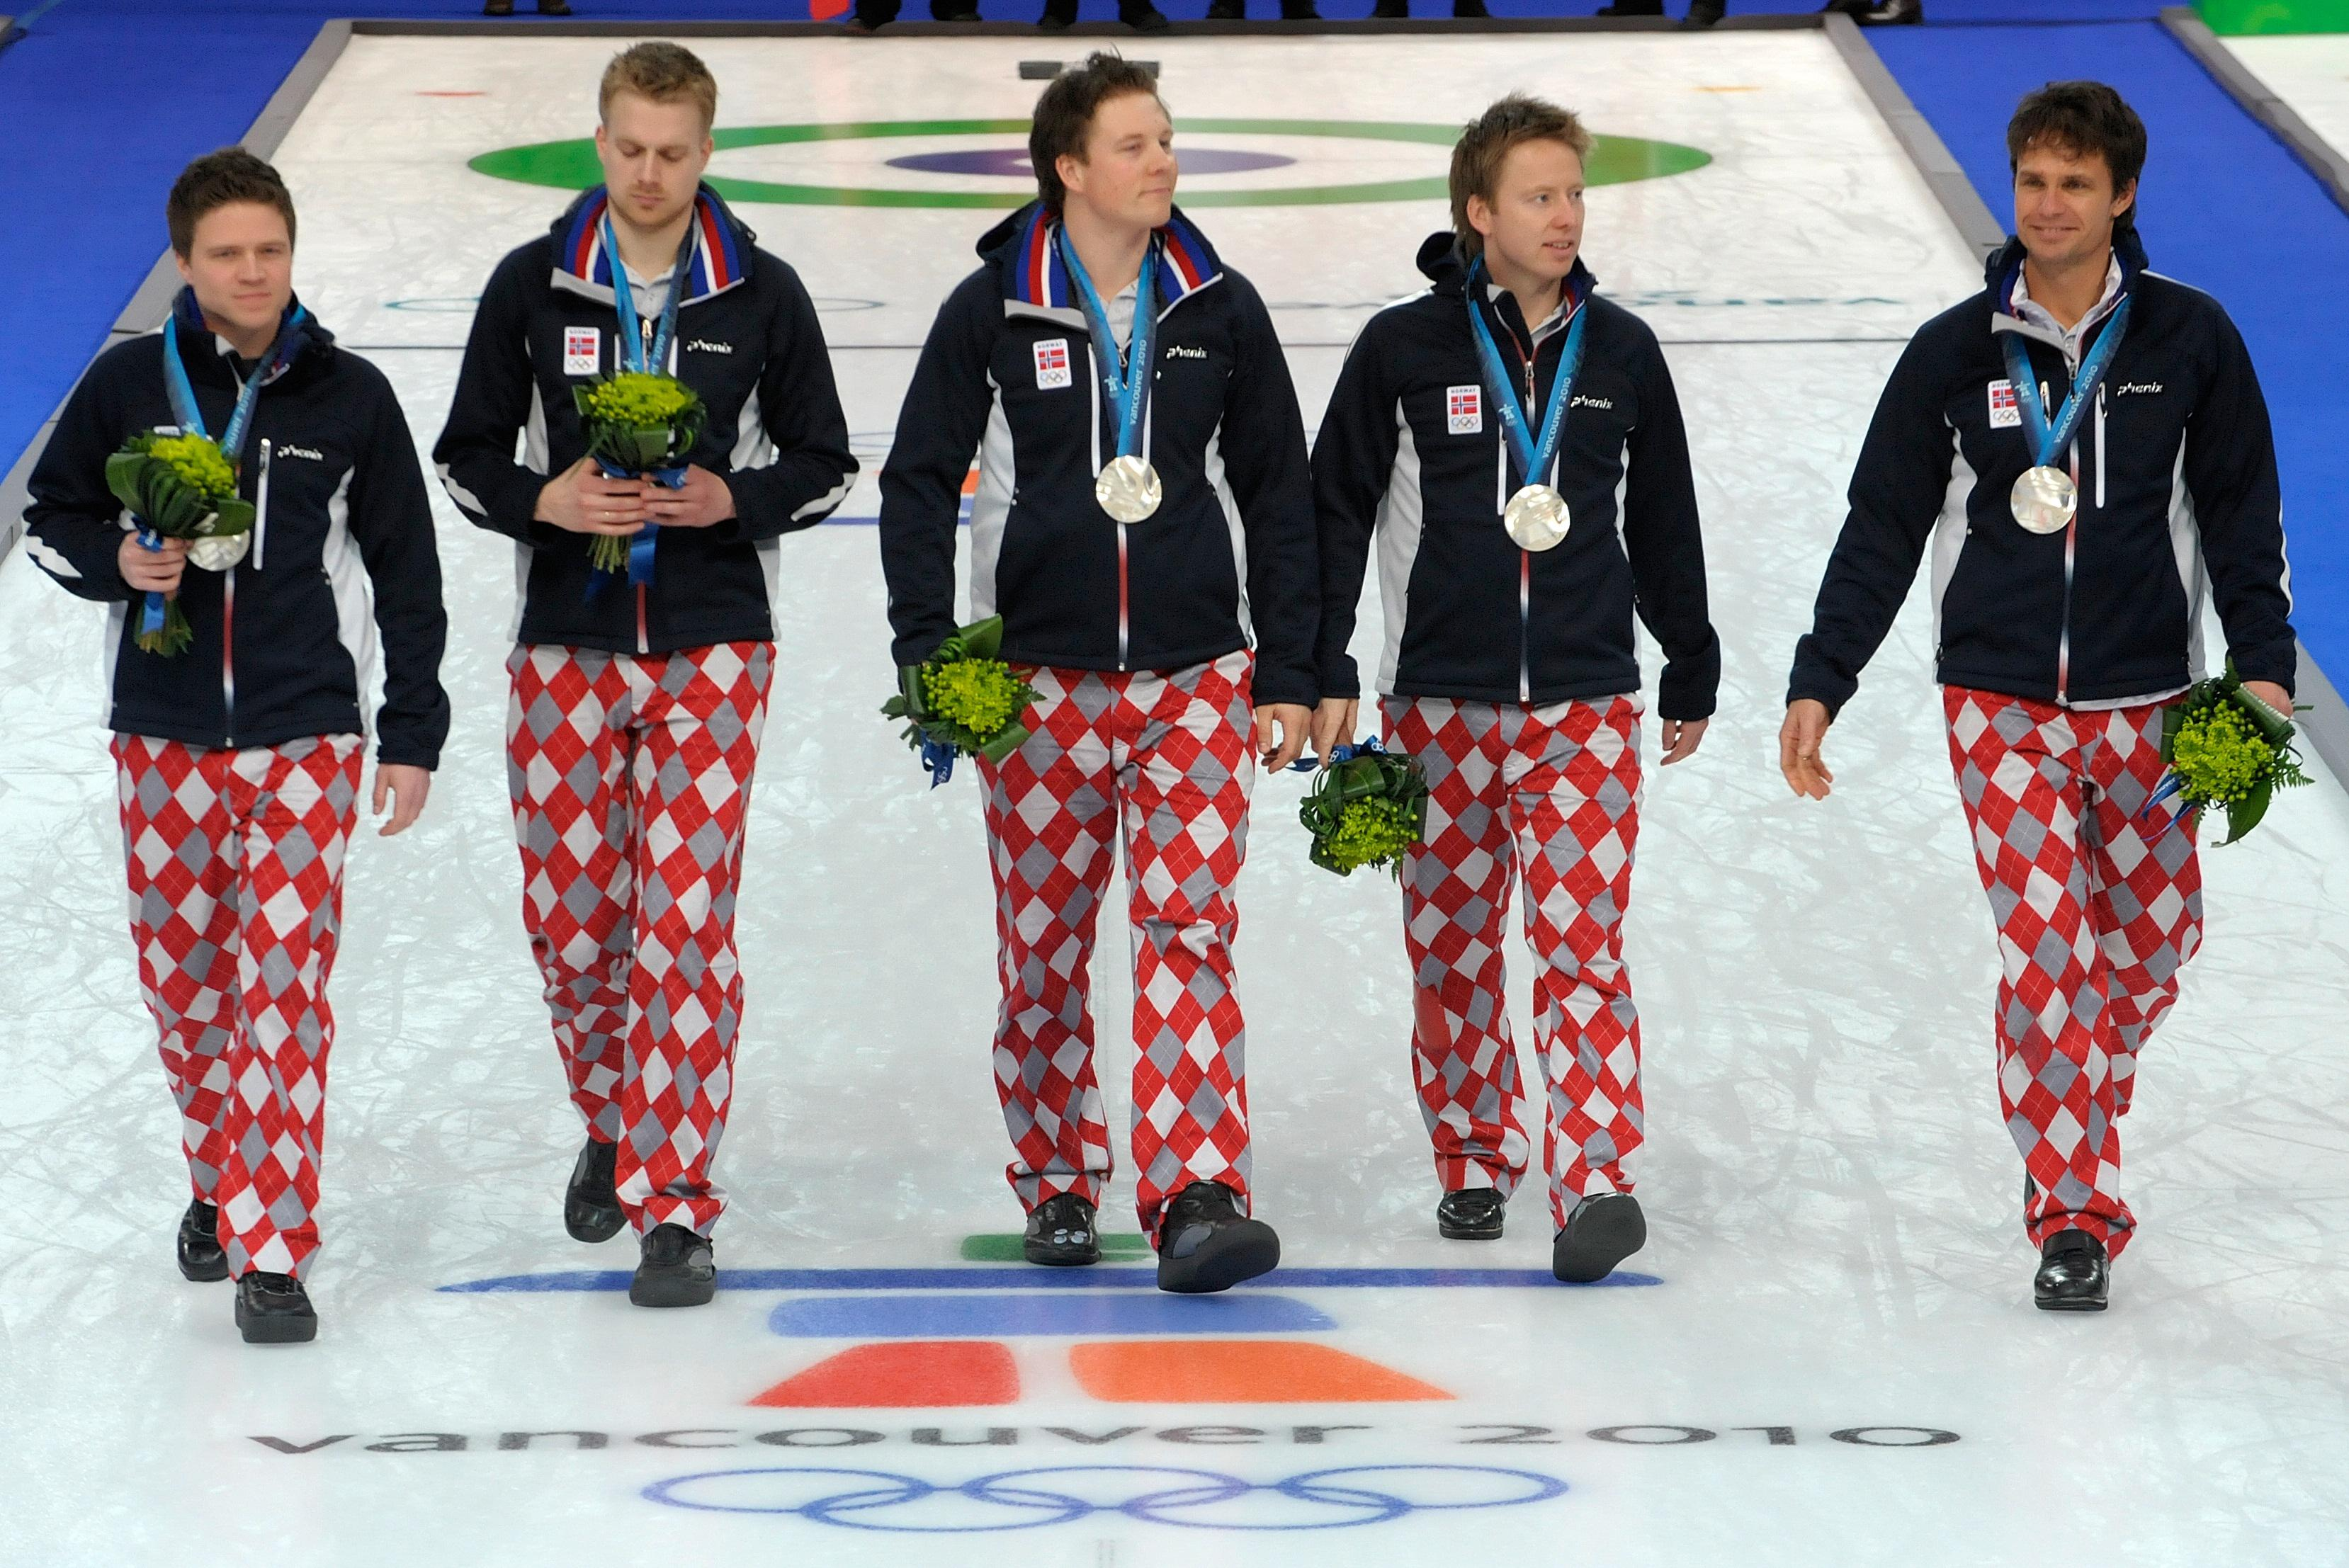 Silver medal winner Norway team, (L-R) Thomas Loevold, Haavard Vad Petersson, Christoffer Svae, Torger Nergaard and Thomas Ulsrud march on the sheet during the medal presentation ceremony after their Vancouver Winter Olympics men's curling gold medal match at the Vancouver Olympic Centre, on February 27, 2010.    AFP PHOTO / TOSHIFUMI KITAMURA (Photo credit should read TOSHIFUMI KITAMURA/AFP/Getty Images)